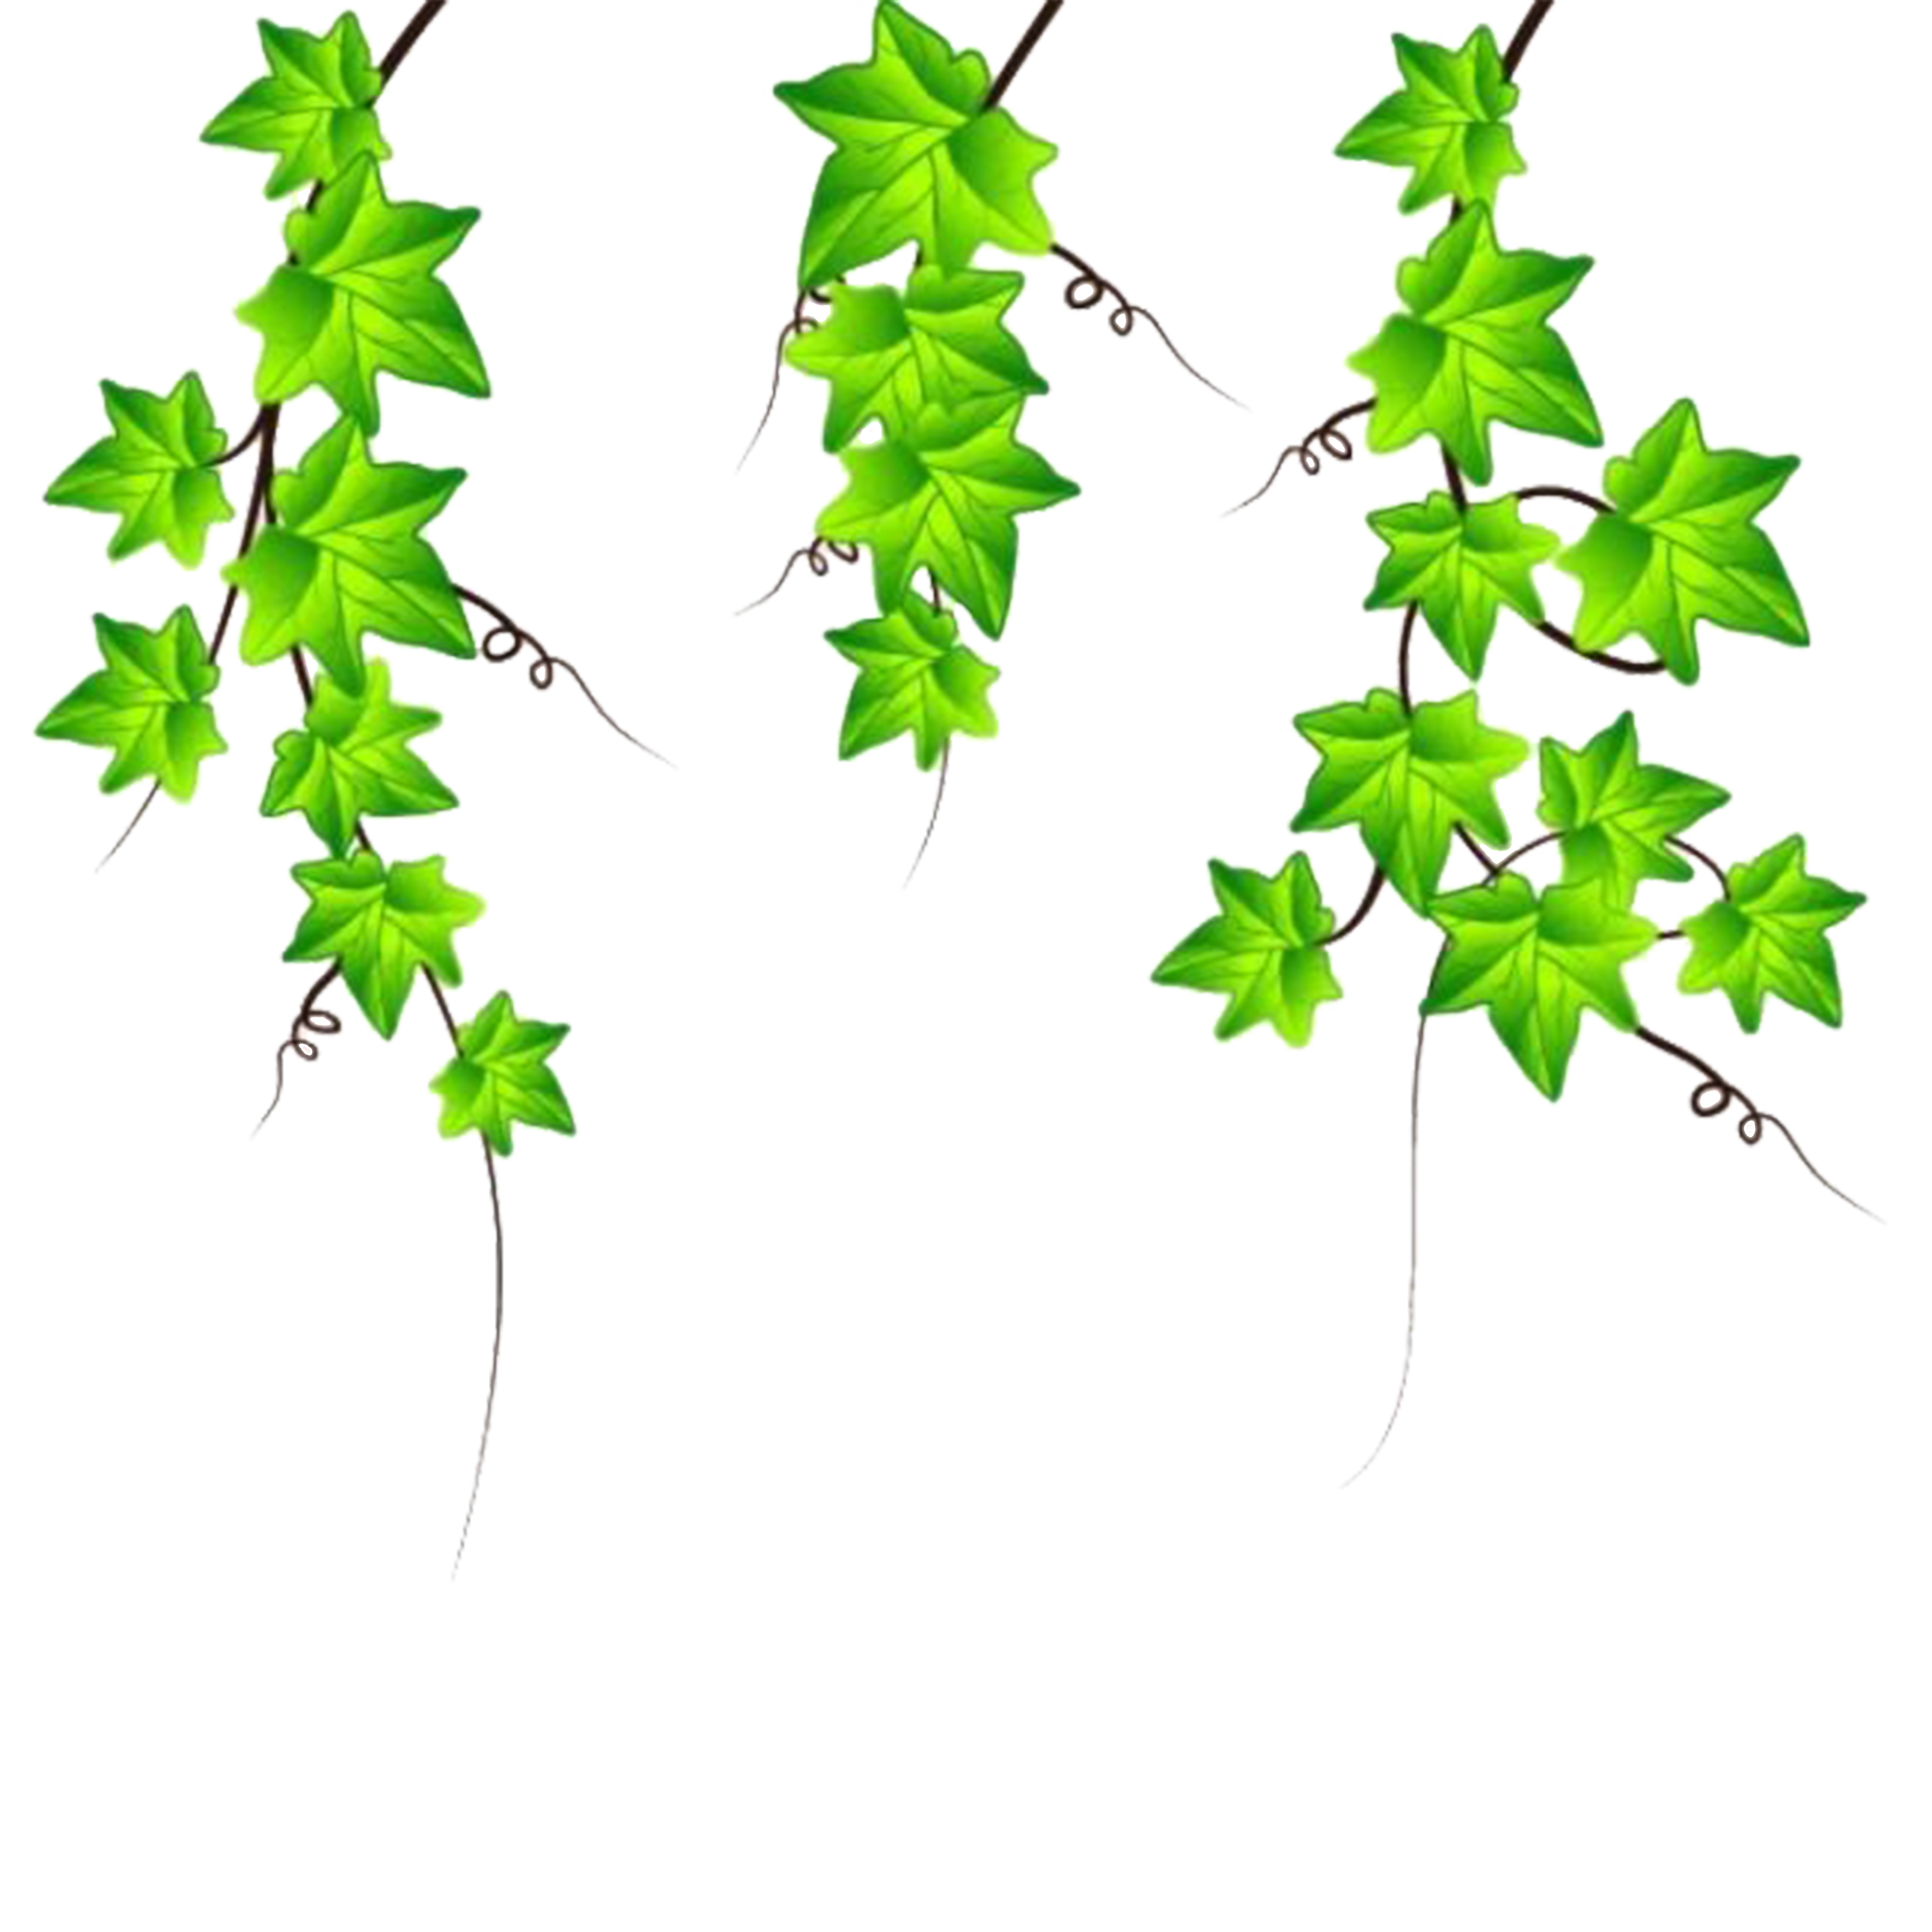 Drawing ivy. Clip art vines are